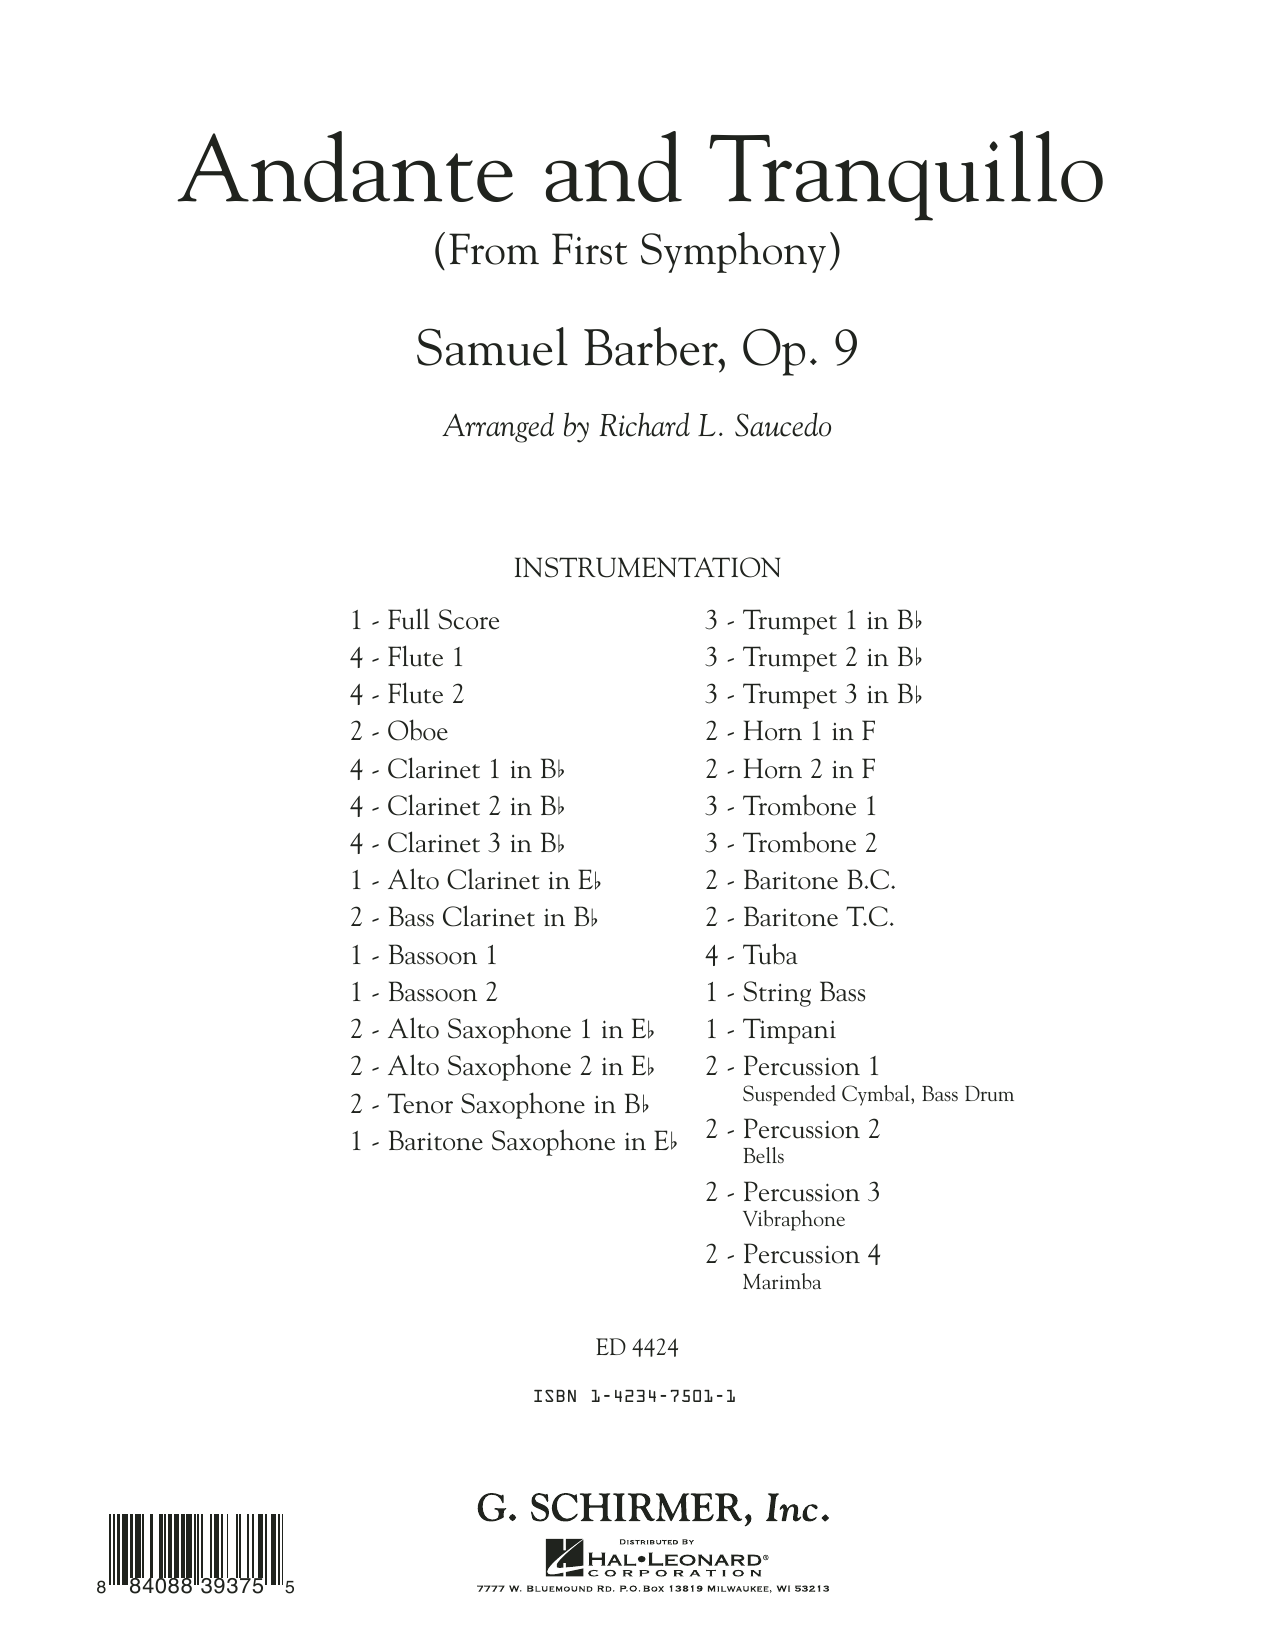 Andante and Tranquillo (from First Symphony) - Full Score